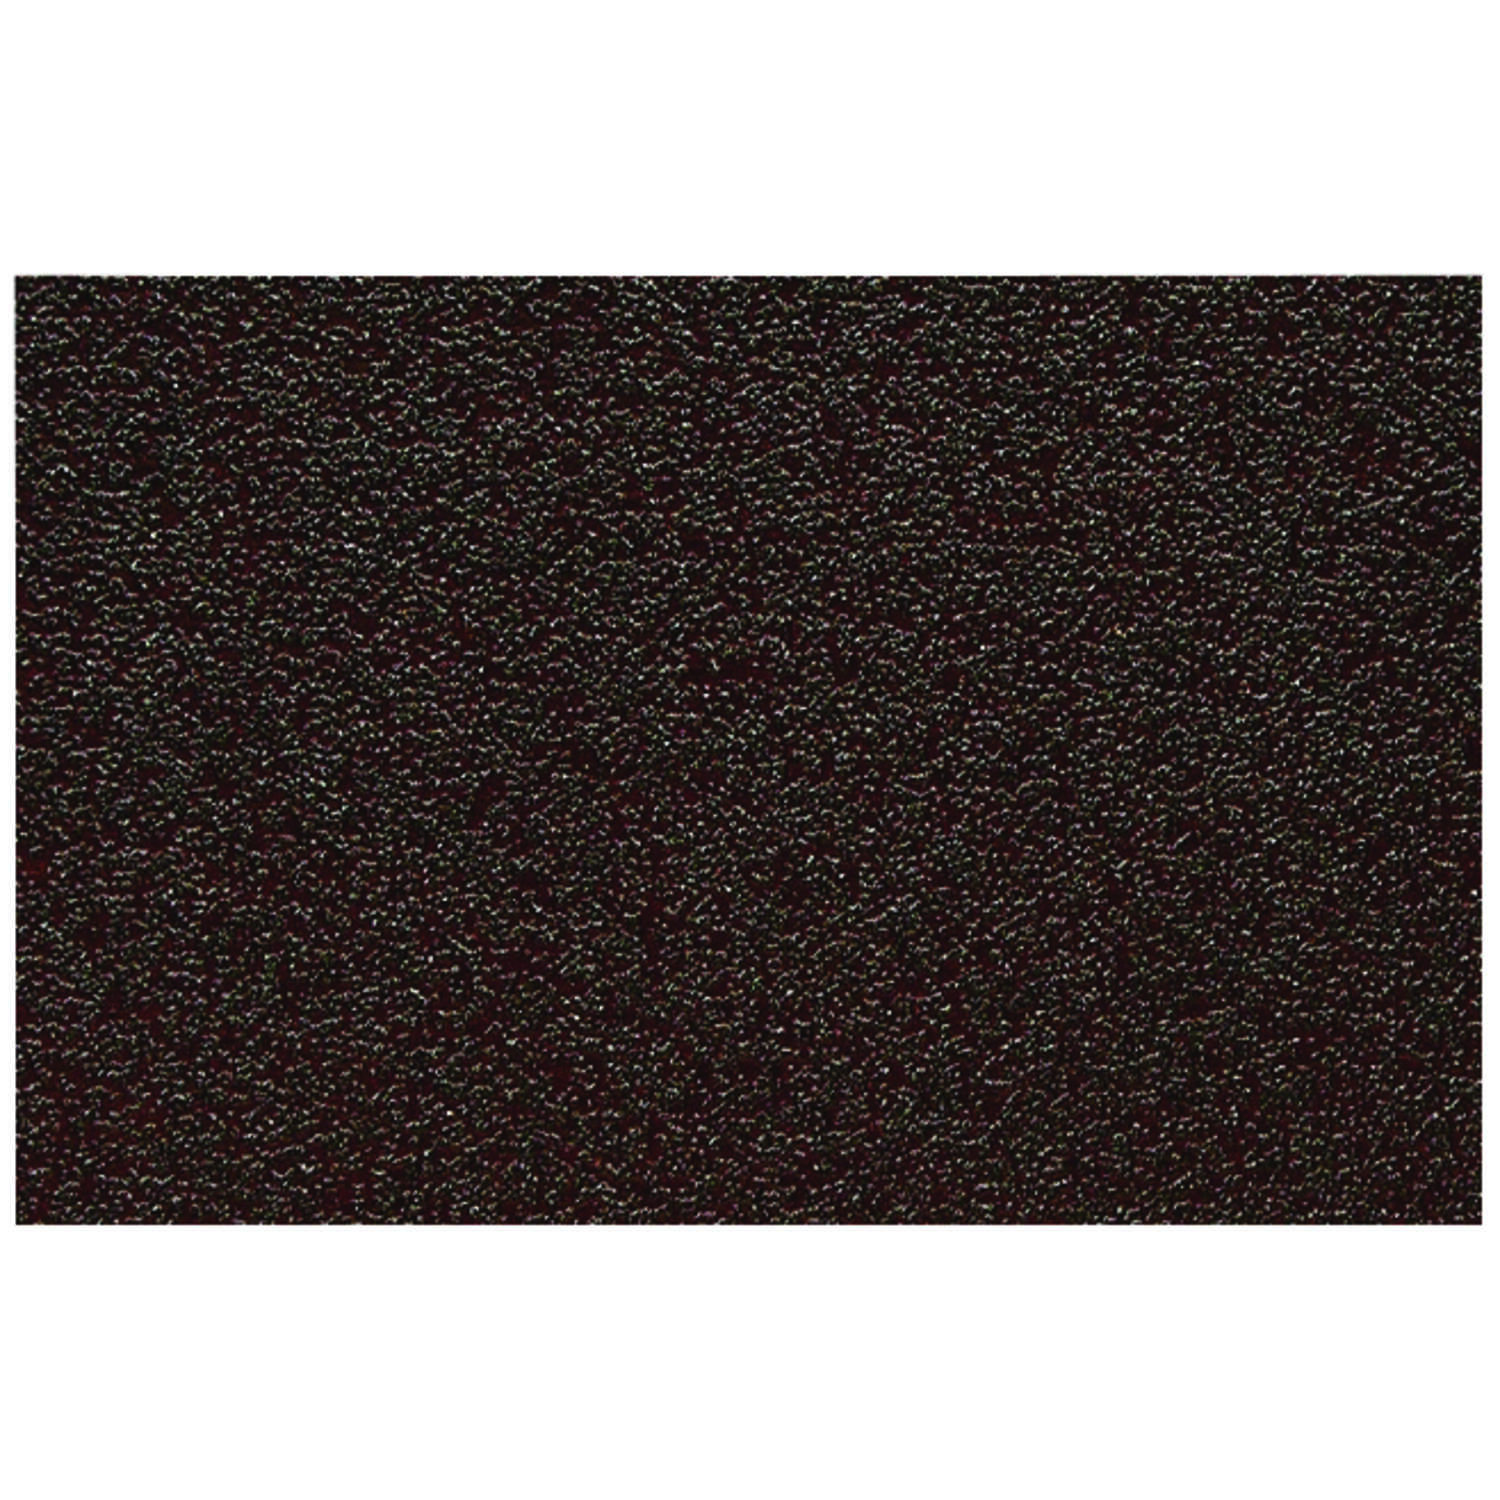 Gator  18 in. L x 12 in. W Silicon Carbide  Floor Sanding Sheet  1 pk Extra Coarse  36 Grit